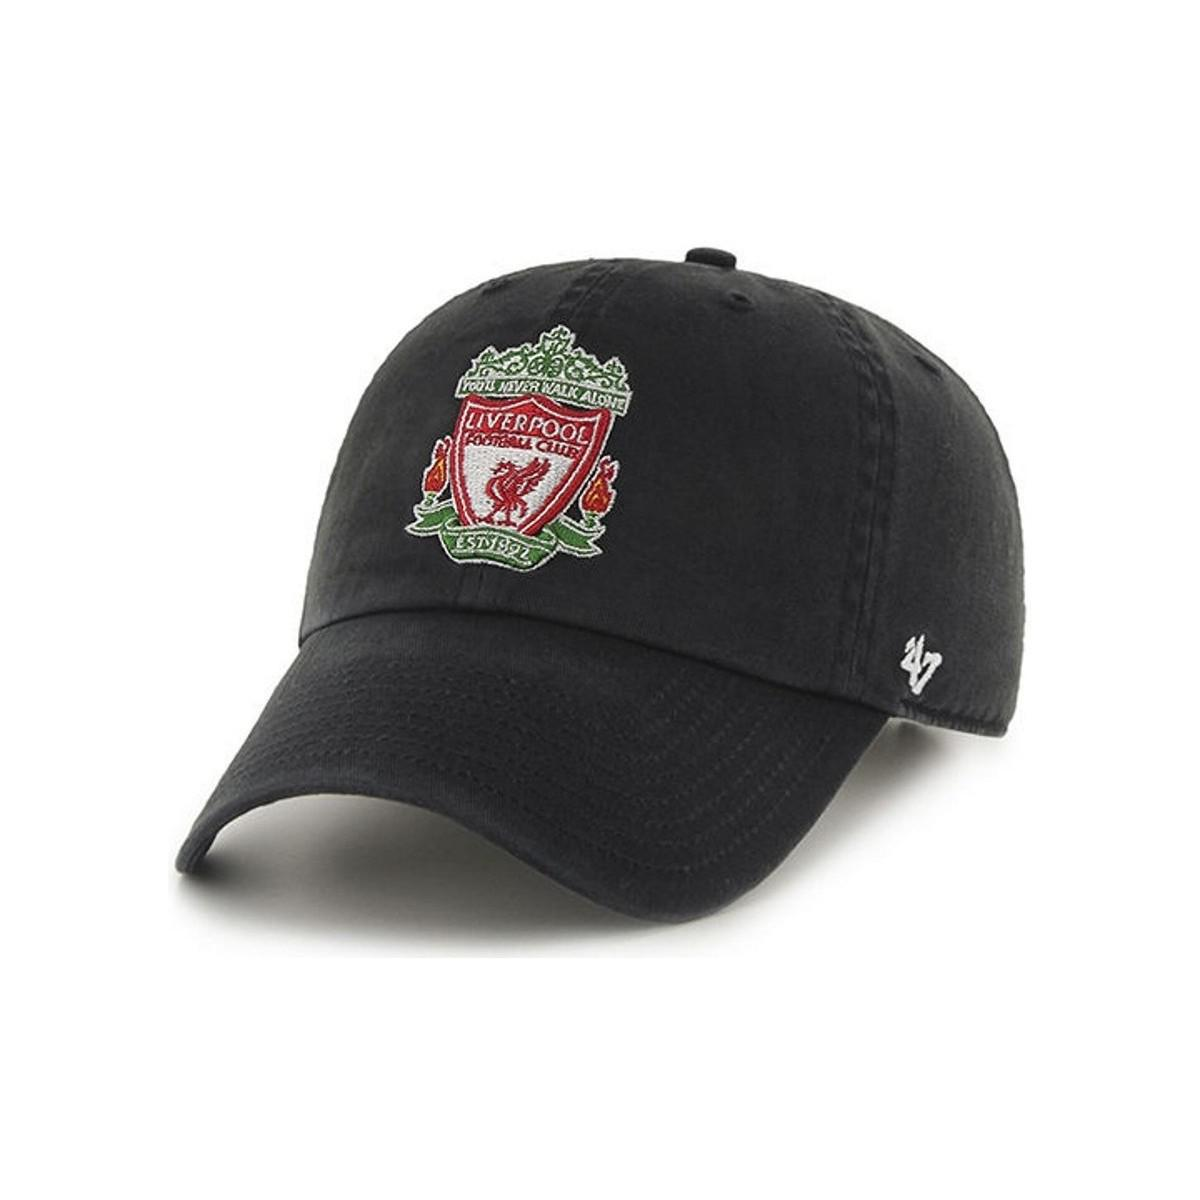 31faff856bf 47 Brand Epl Liverpool Fc Clean Up Cap - Black Men s Cap In Black in ...